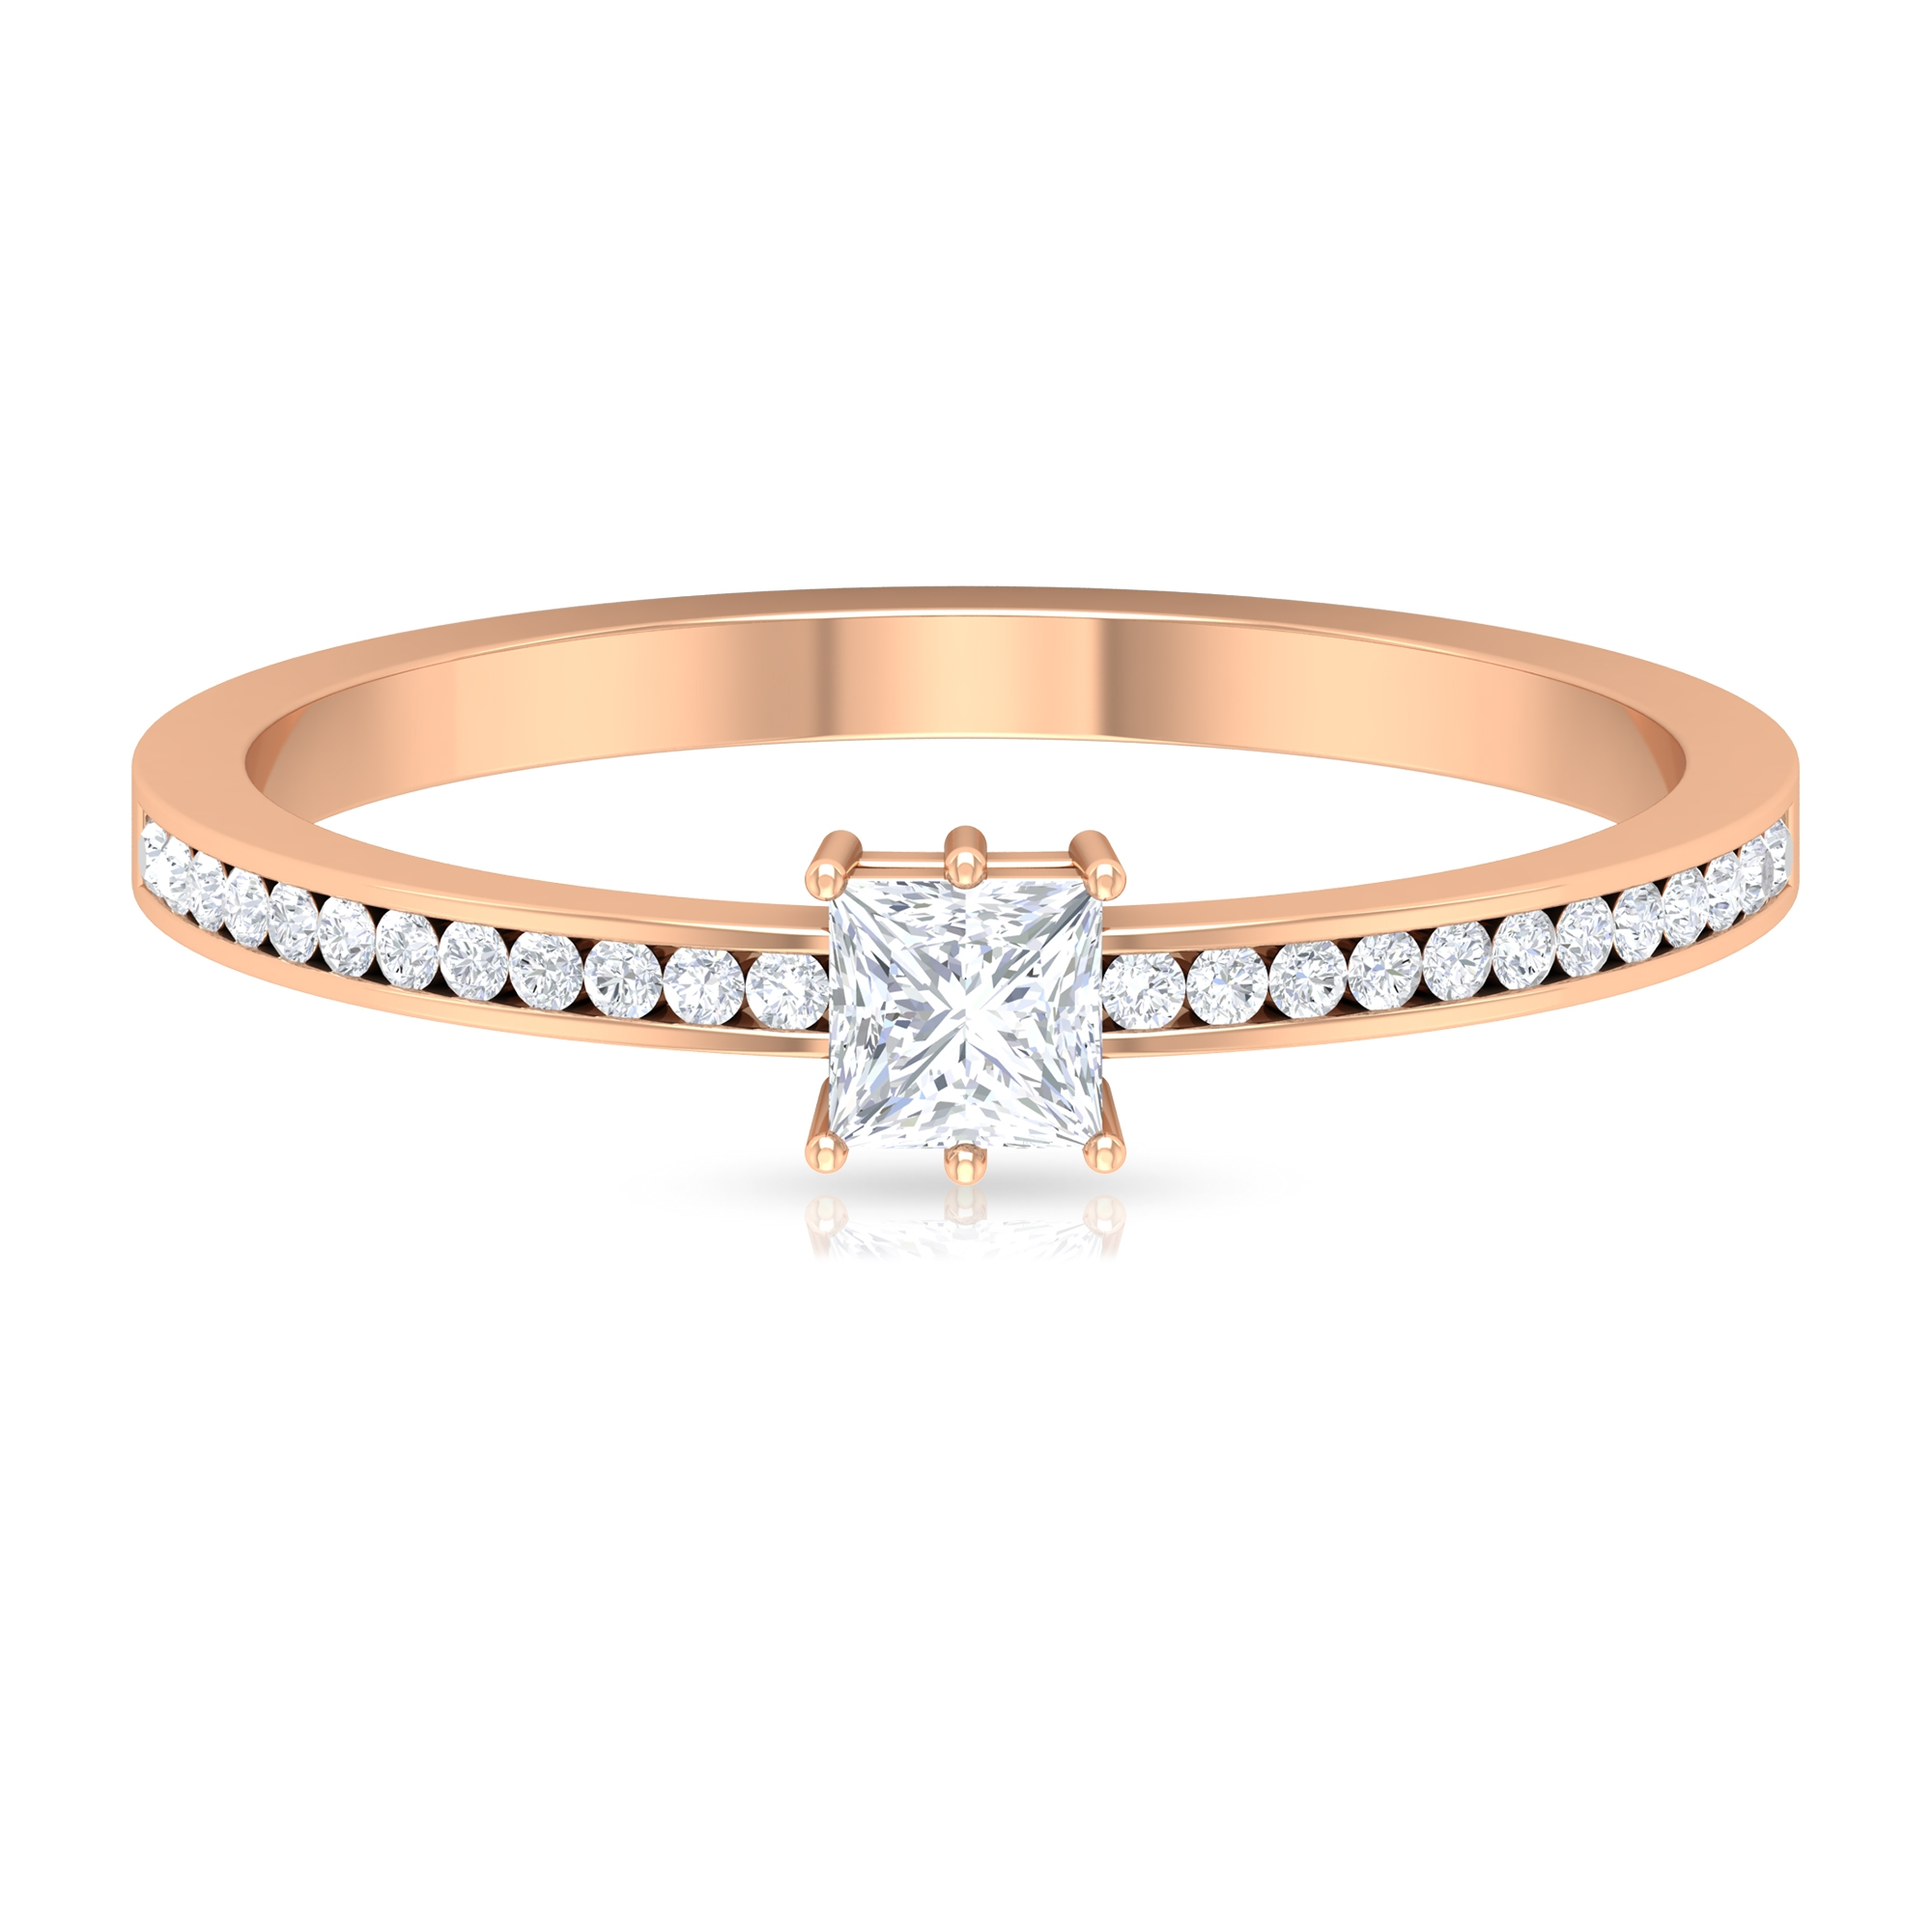 3/4 CT Princess Cut Diamond Solitaire and Side Stones Ring